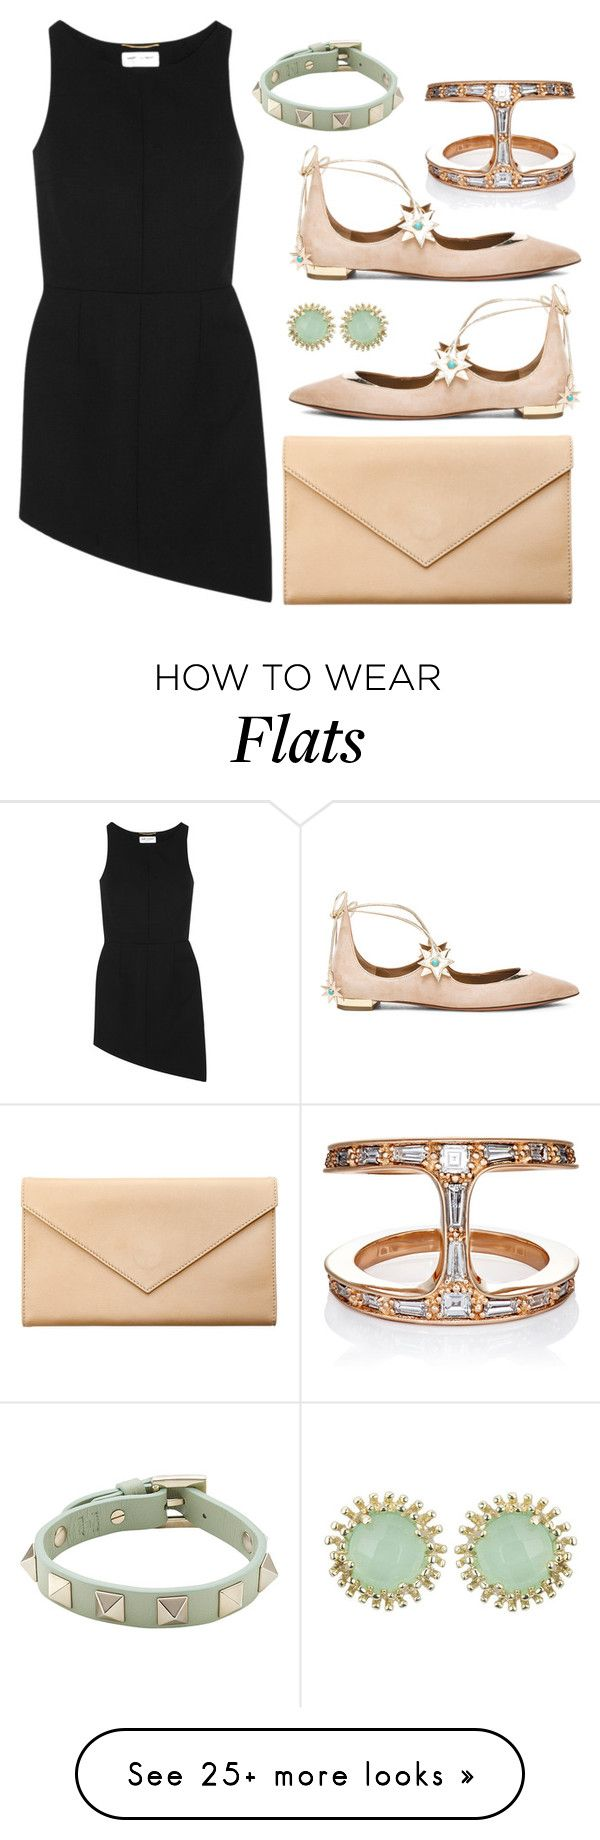 """""""LBD"""" by cherieaustin on Polyvore featuring Yves Saint Laurent, Aquazzura, Carré Royal, Hoorsenbuhs, Valentino and Kendra Scott"""